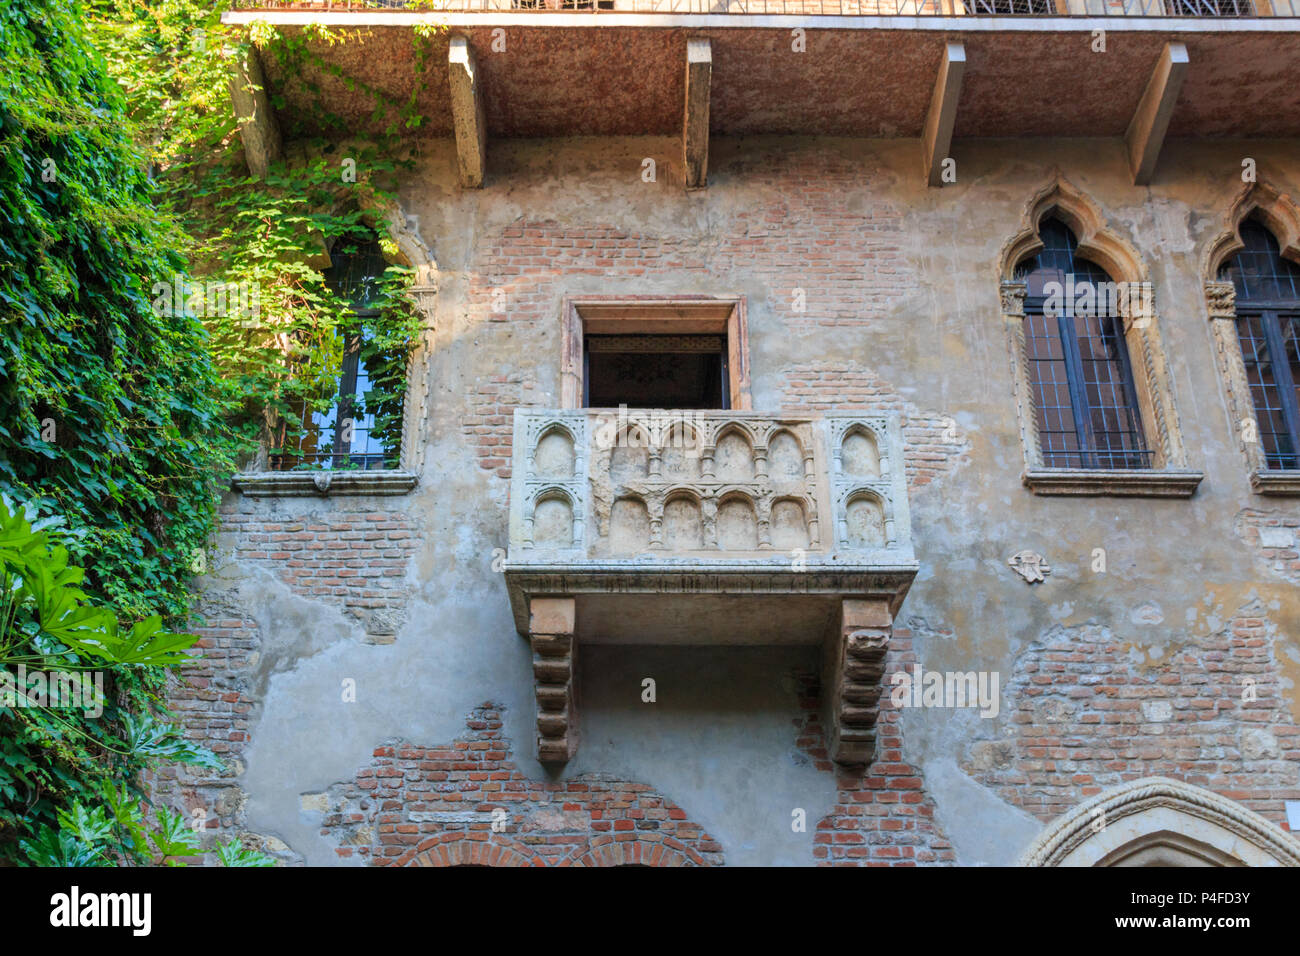 Balcony at Juliet's house is a major landmark and tourist attraction in Verona, Italy - Stock Image